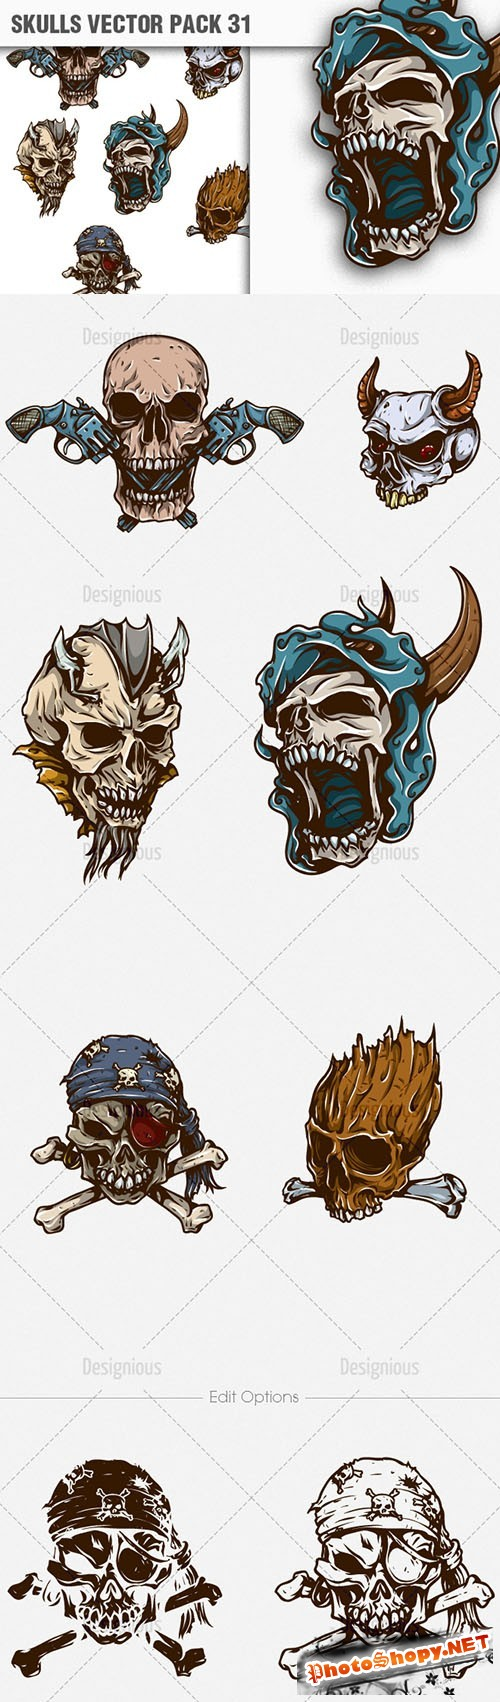 Skulls Vector Illustrations Pack 31